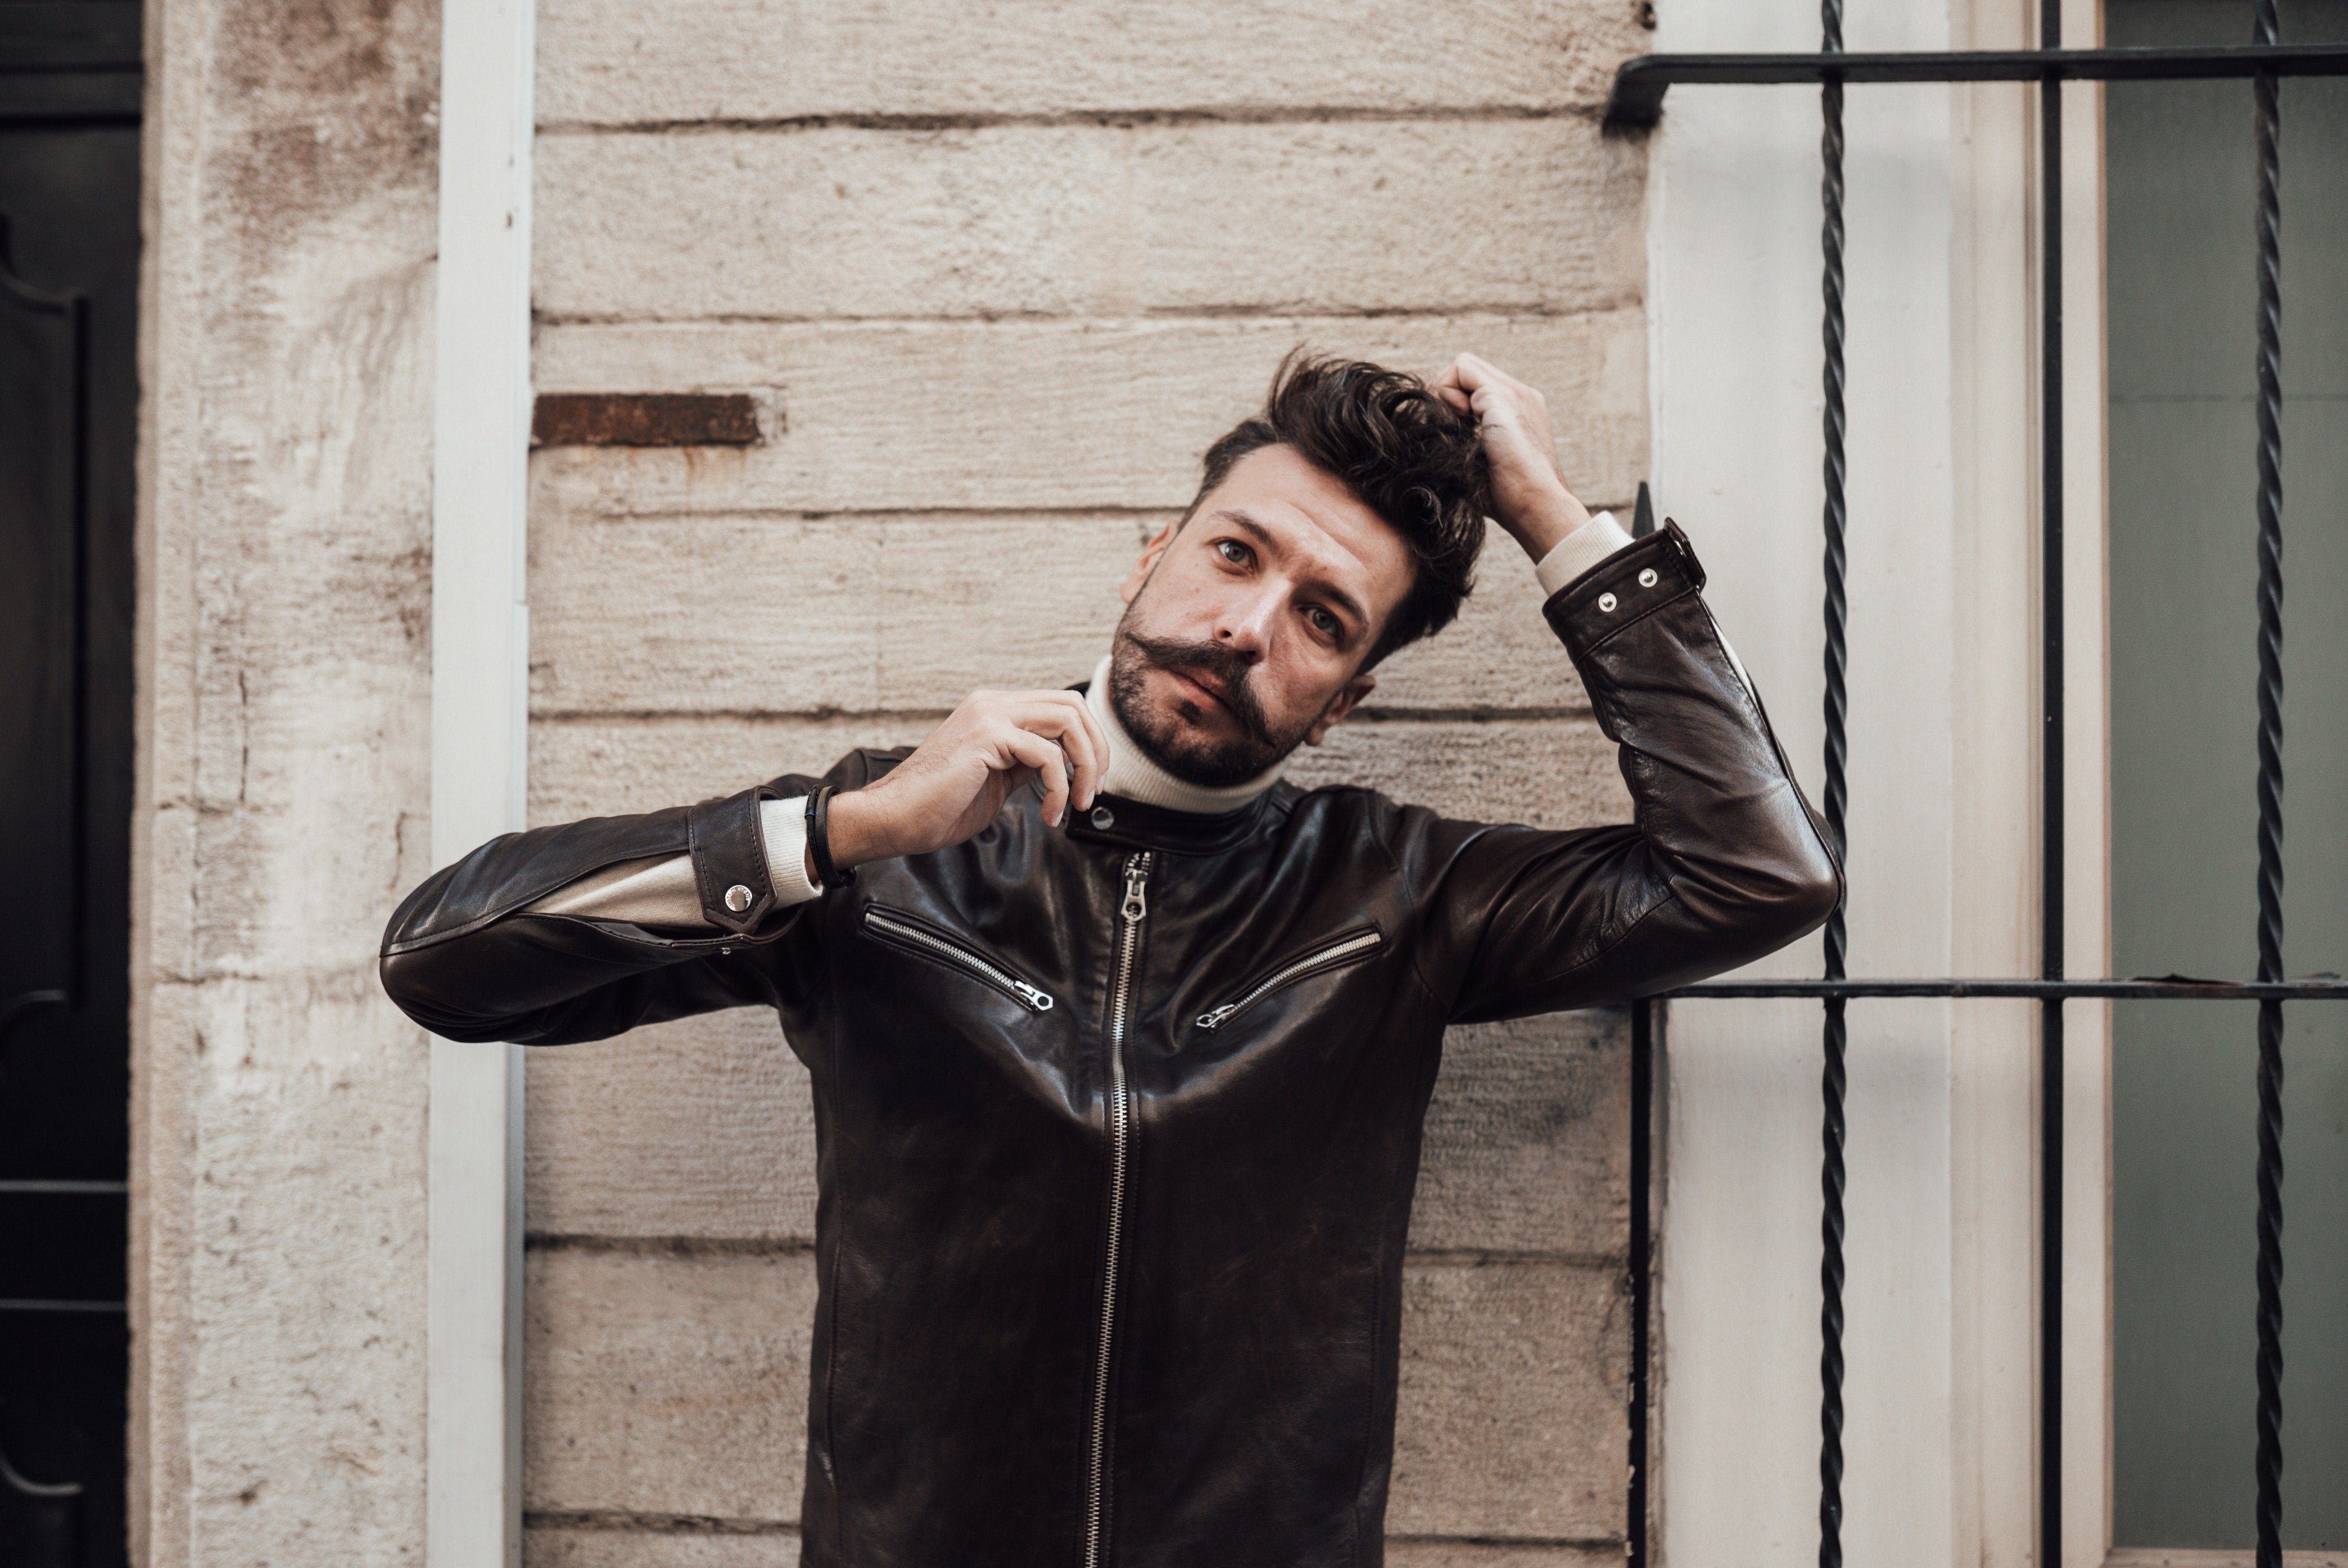 a leather jacket should be able to zip up